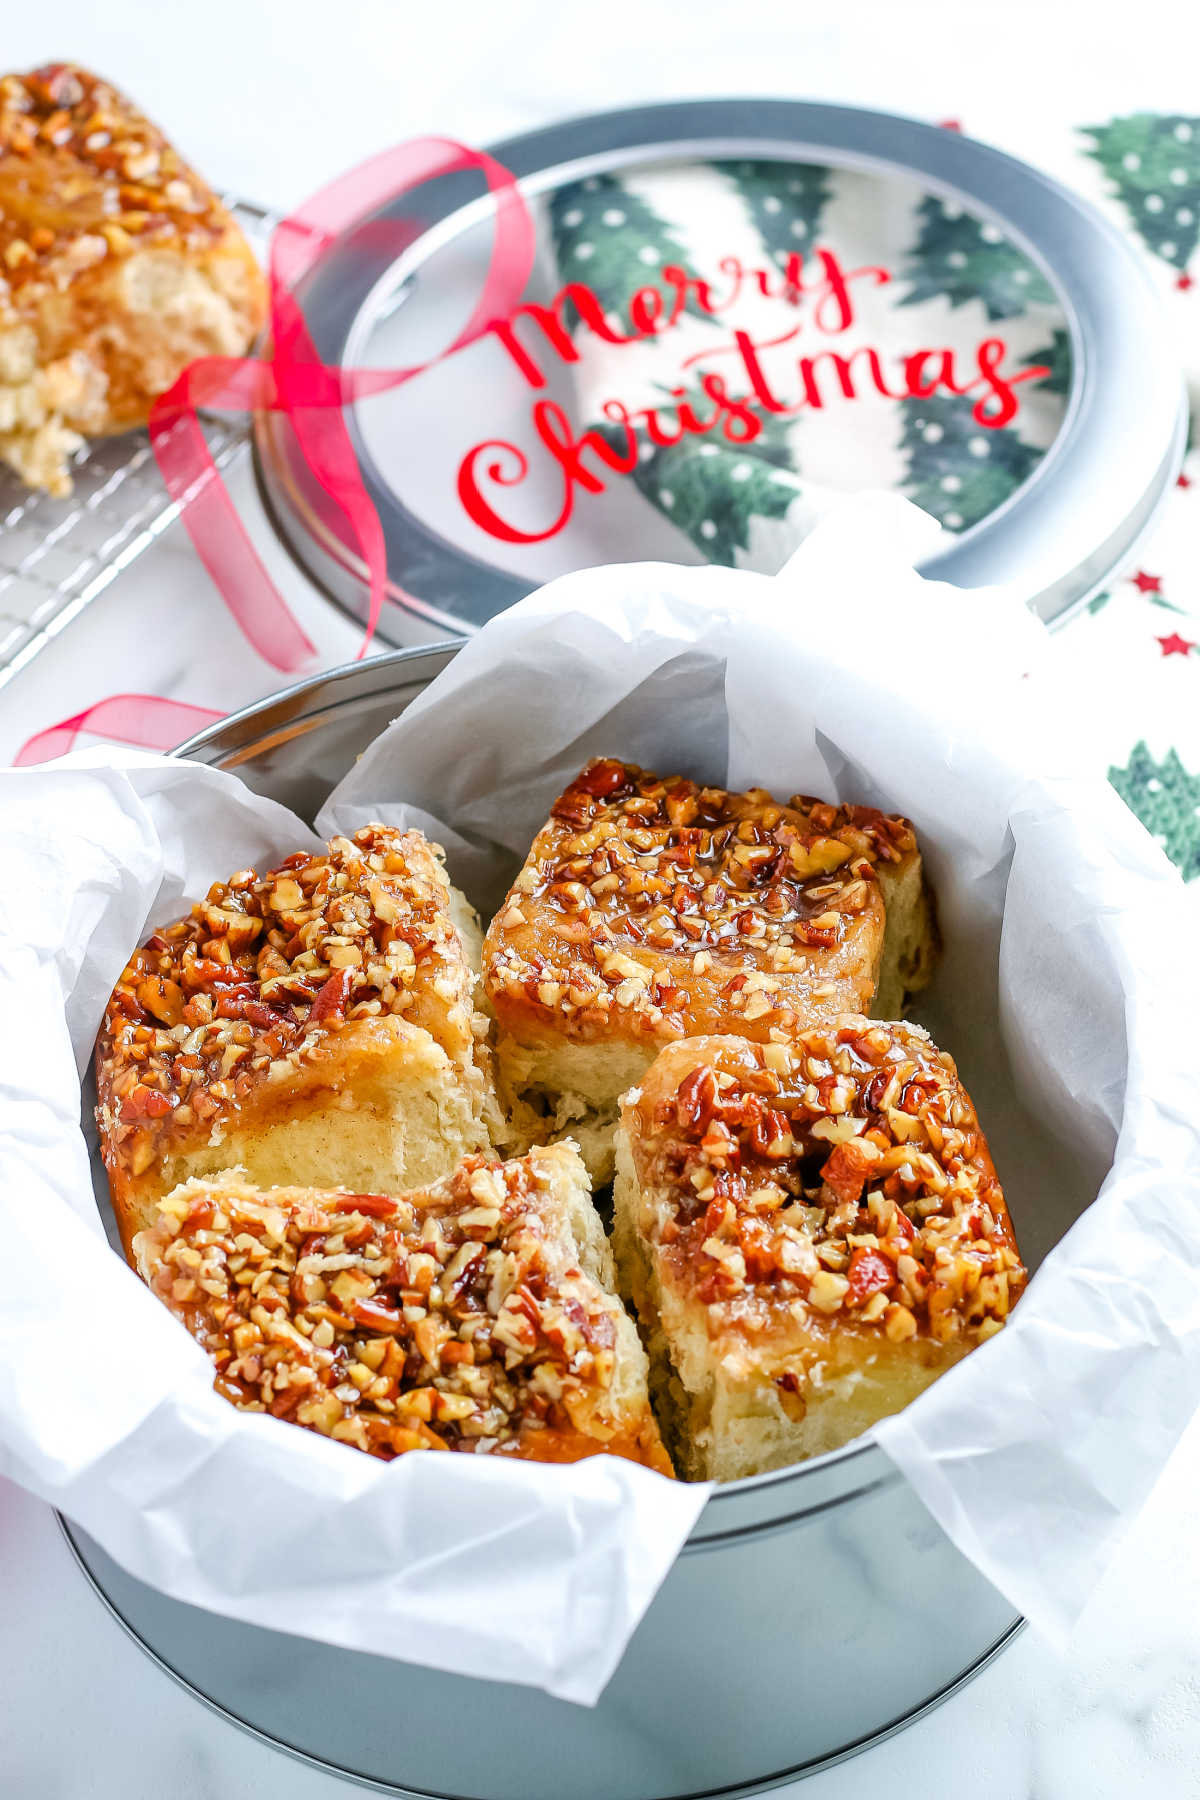 This Pecan Sticky Buns recipe has an enriched dough and a scrumptious caramel-pecan sticky topping. These are always a hit every time we make them. via @easybudgetrecipes